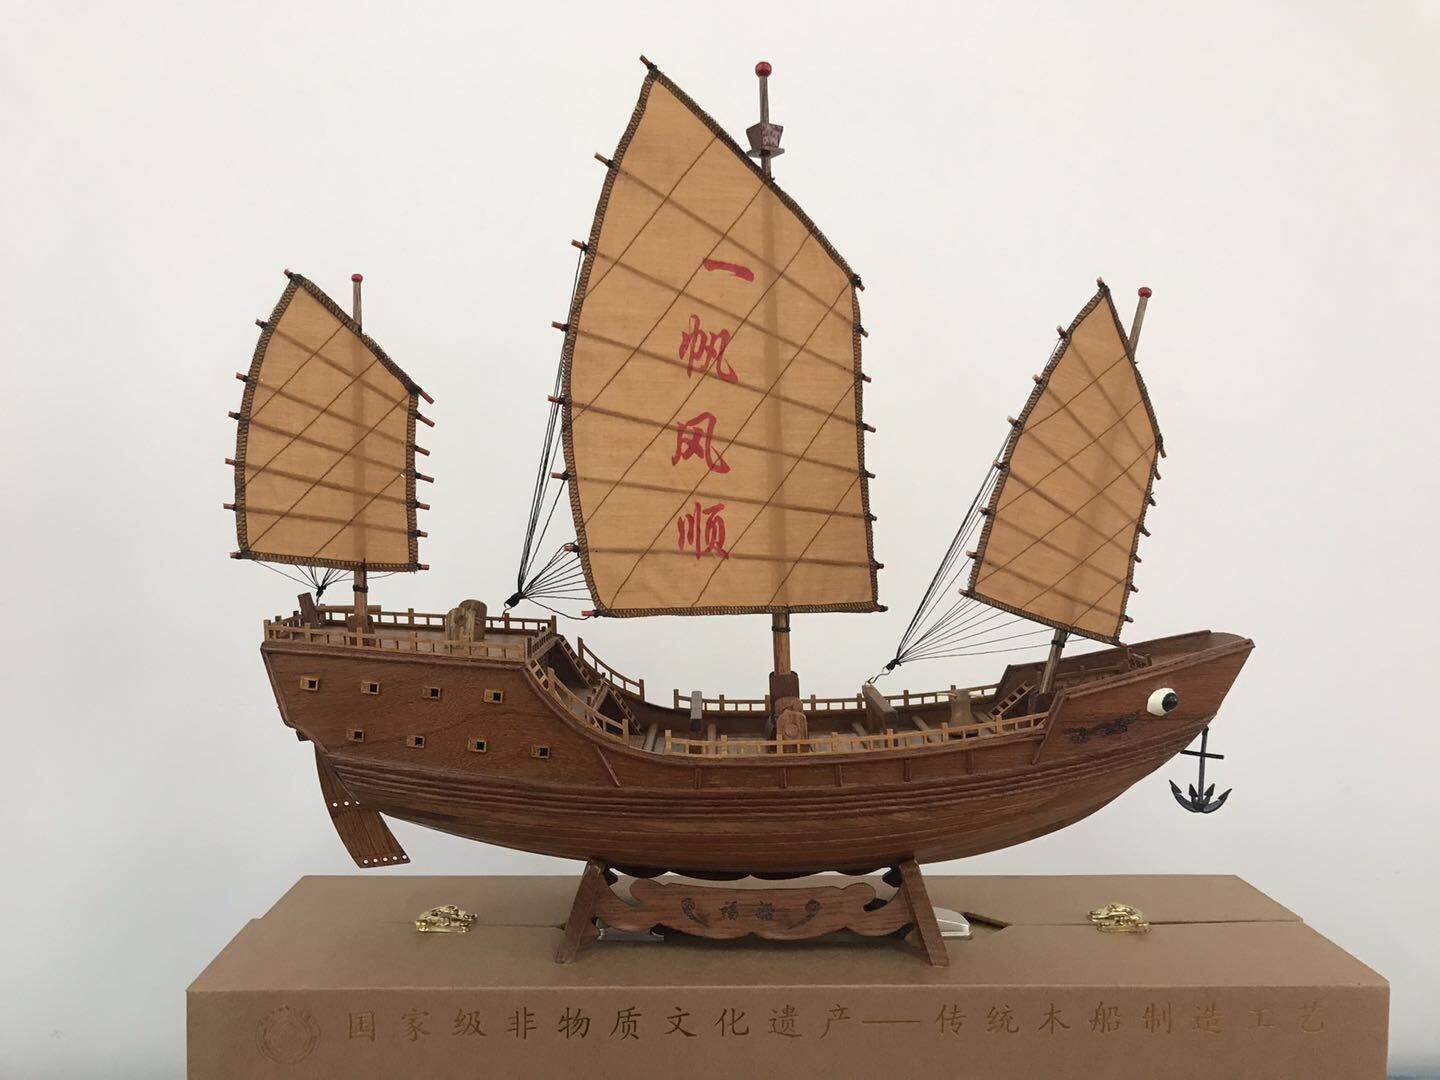 Sailing model, sailing smoothly, decorations for the living room of the office of the Chinese model warship and wooden boat in the south of the Yangtze River